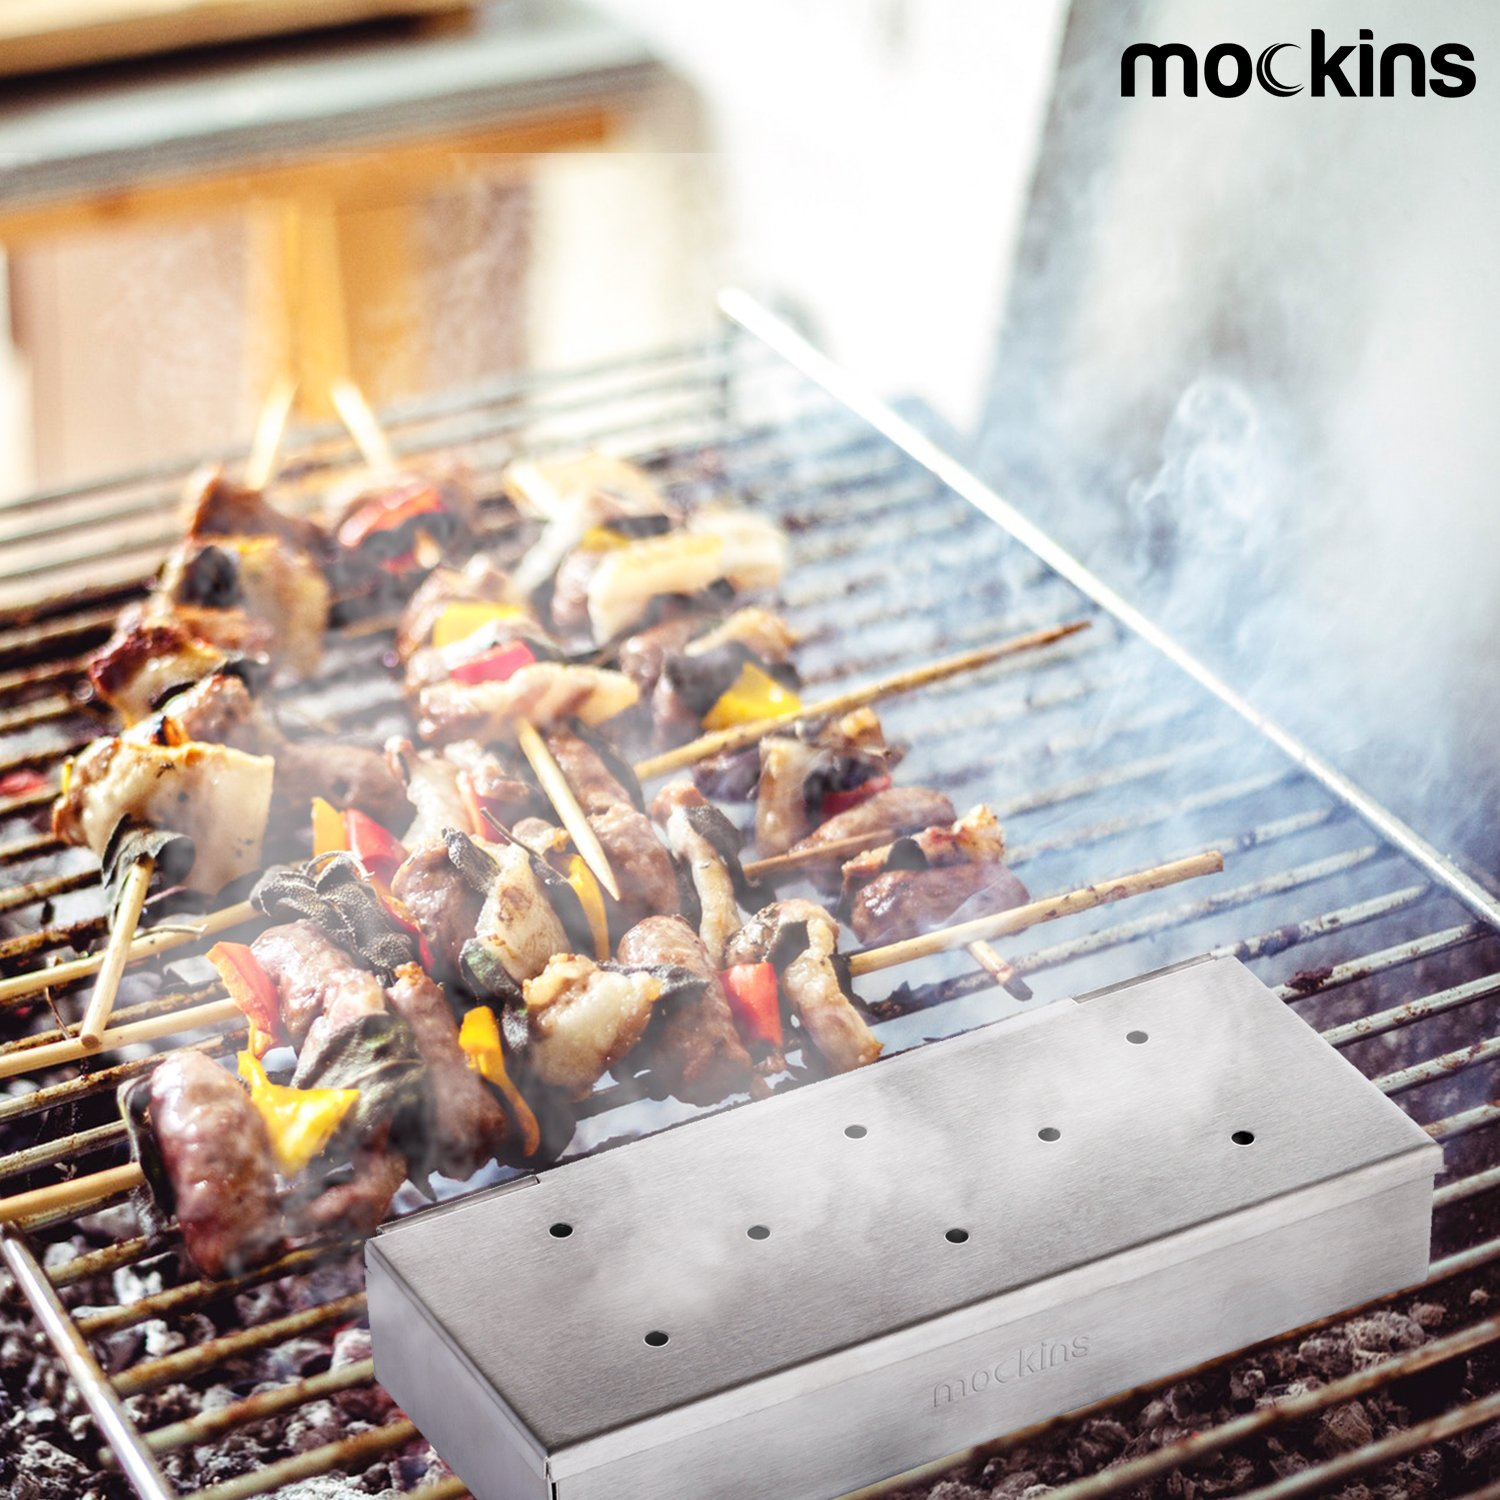 Mockins Even Thicker Stainless Steel BBQ Smoker Box for Grilling Barbecue Wood Chips On Gas Or Charcoal Grill … … by Mockins (Image #3)